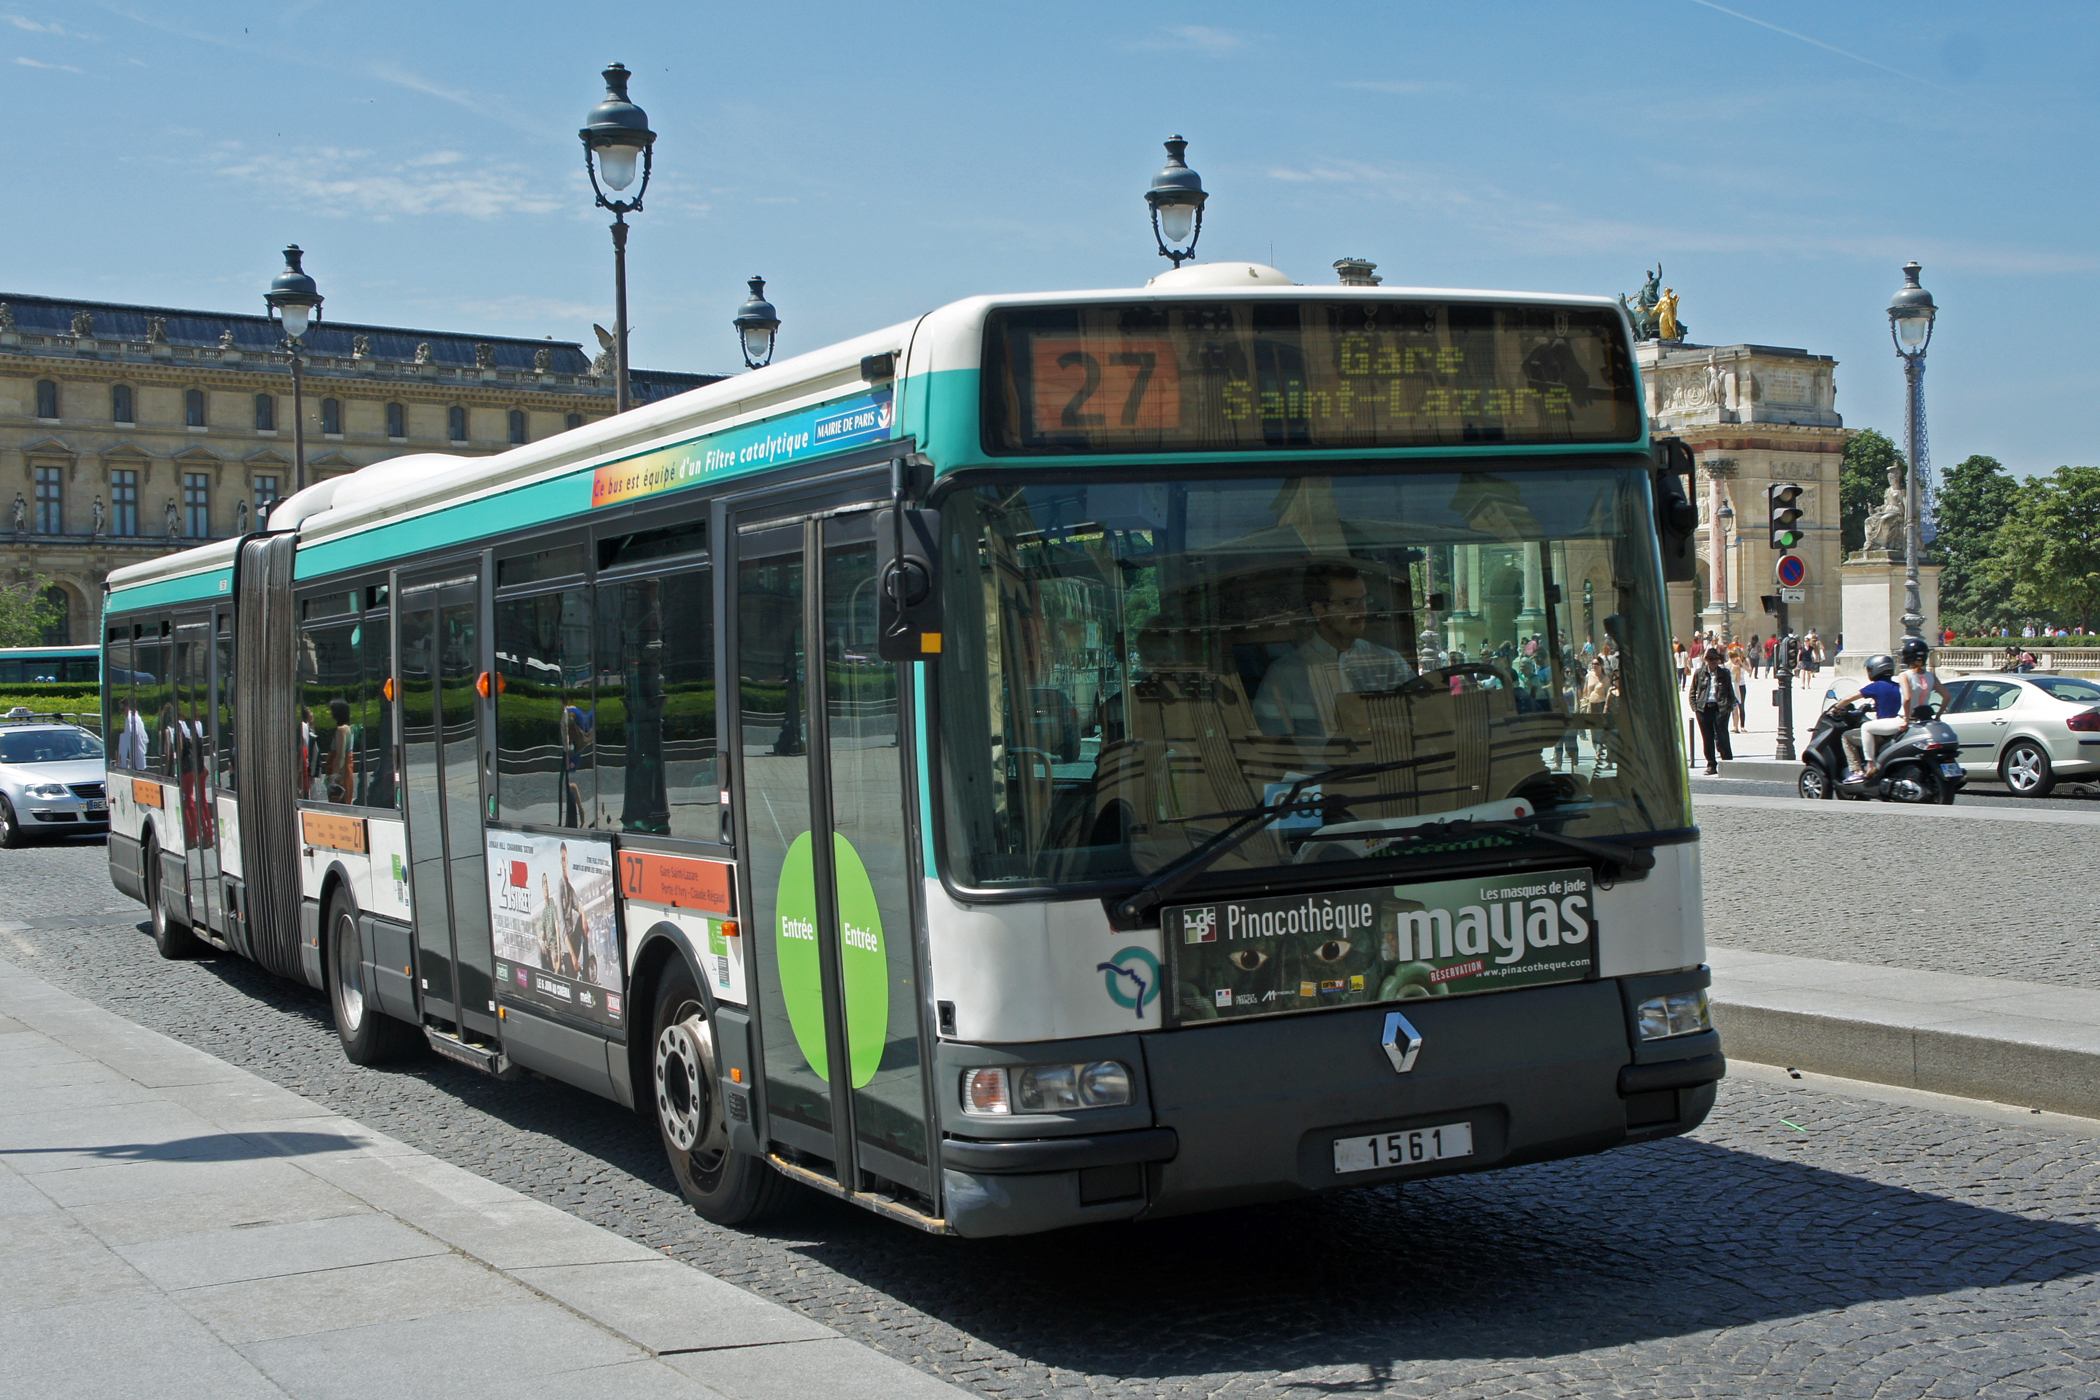 file paris 06 2012 articulated bus 2945 jpg wikimedia commons. Black Bedroom Furniture Sets. Home Design Ideas